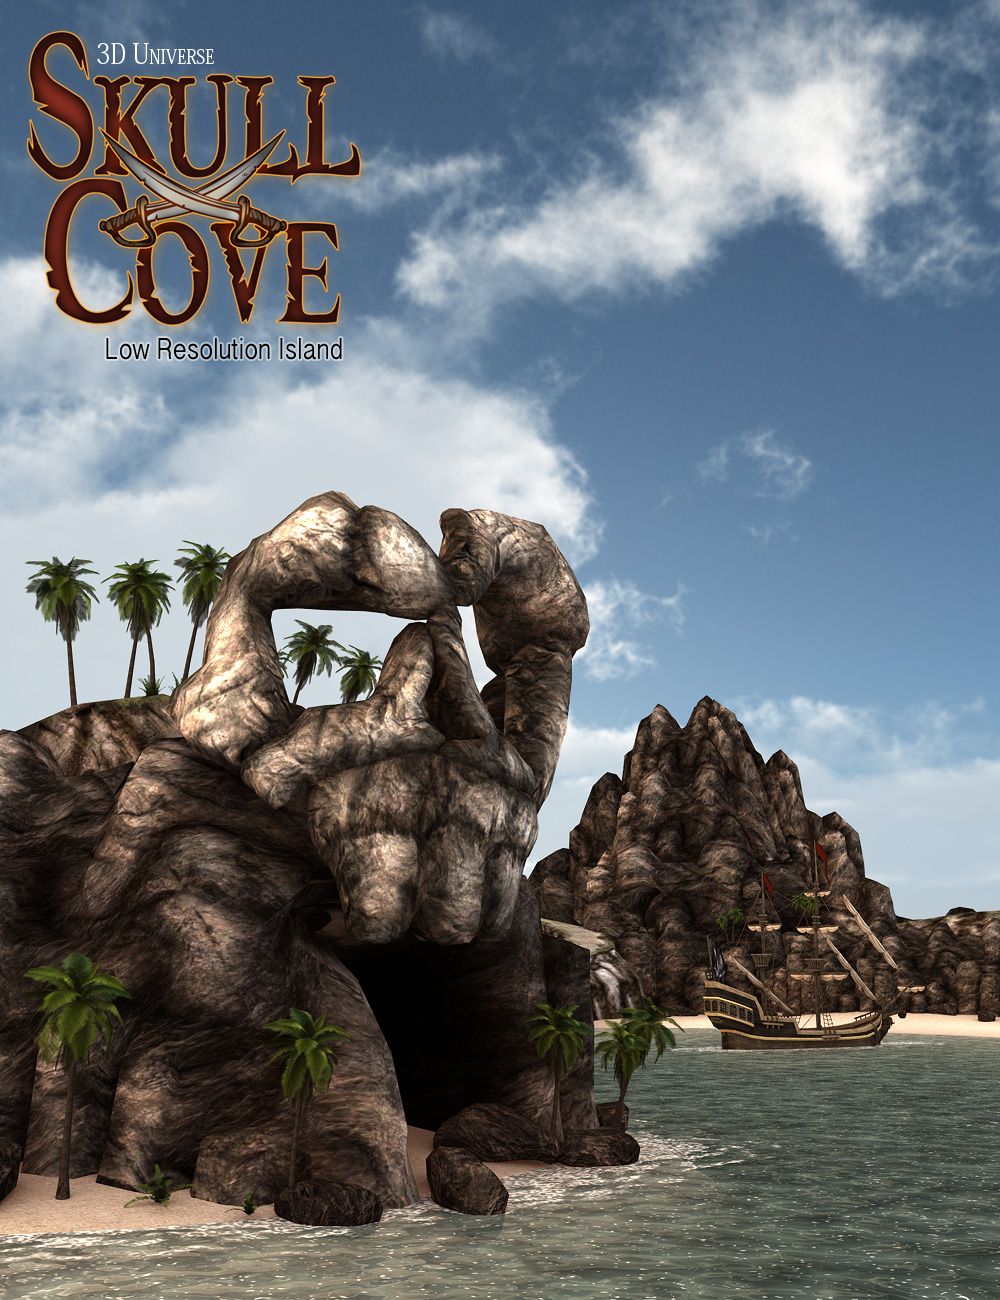 Skull Cove Island by: 3D Universe, 3D Models by Daz 3D